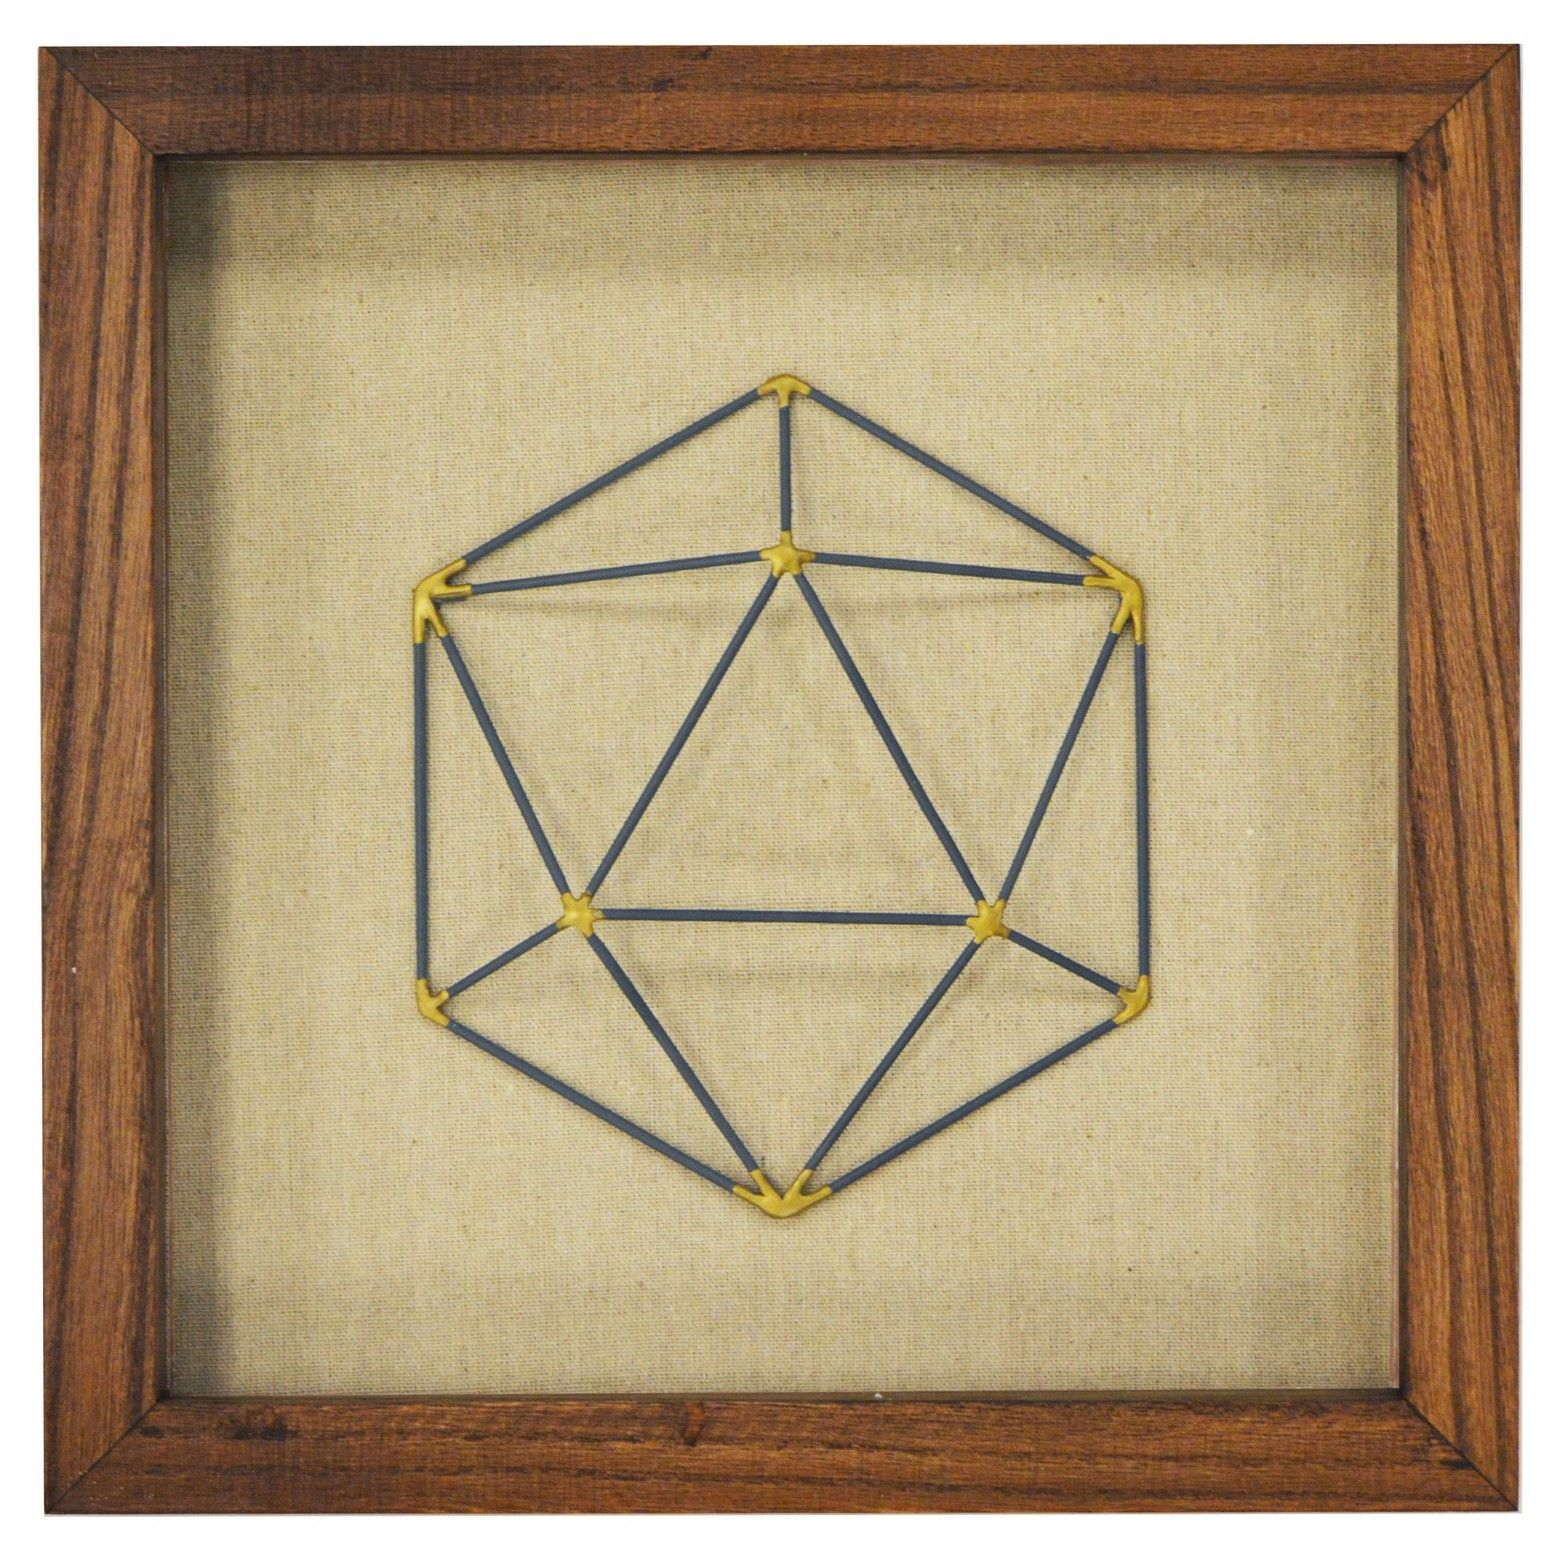 Framed Faceted Wire Hexagon 12   Guest bedroom decor, Office guest ...